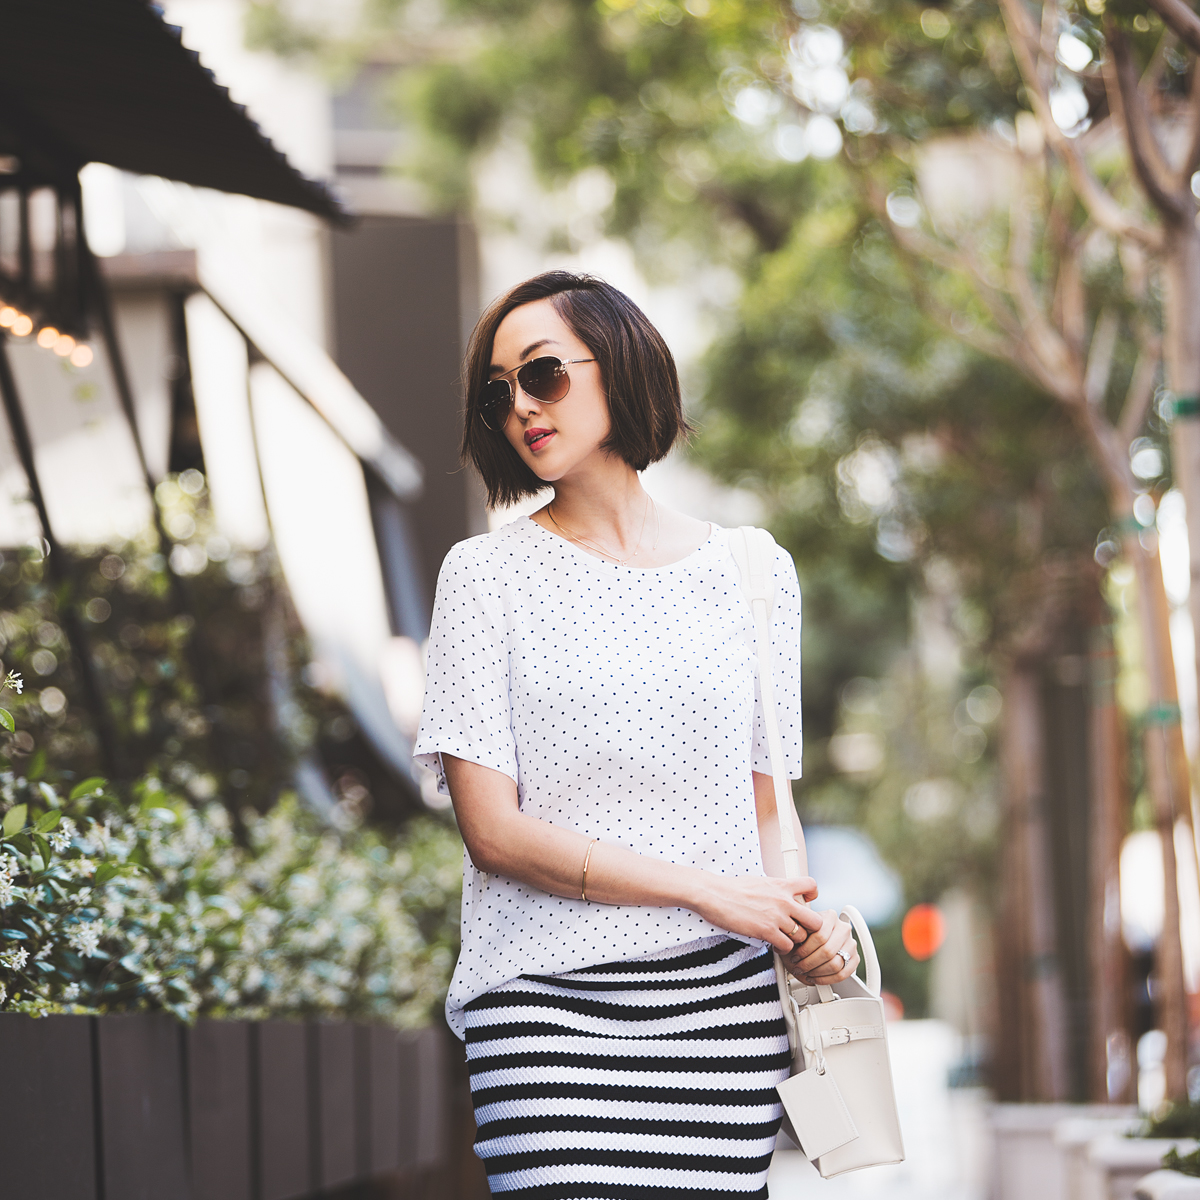 chriselle_lim_balenciaga_white_dotted_top_striped_skirt-1-2.jpg